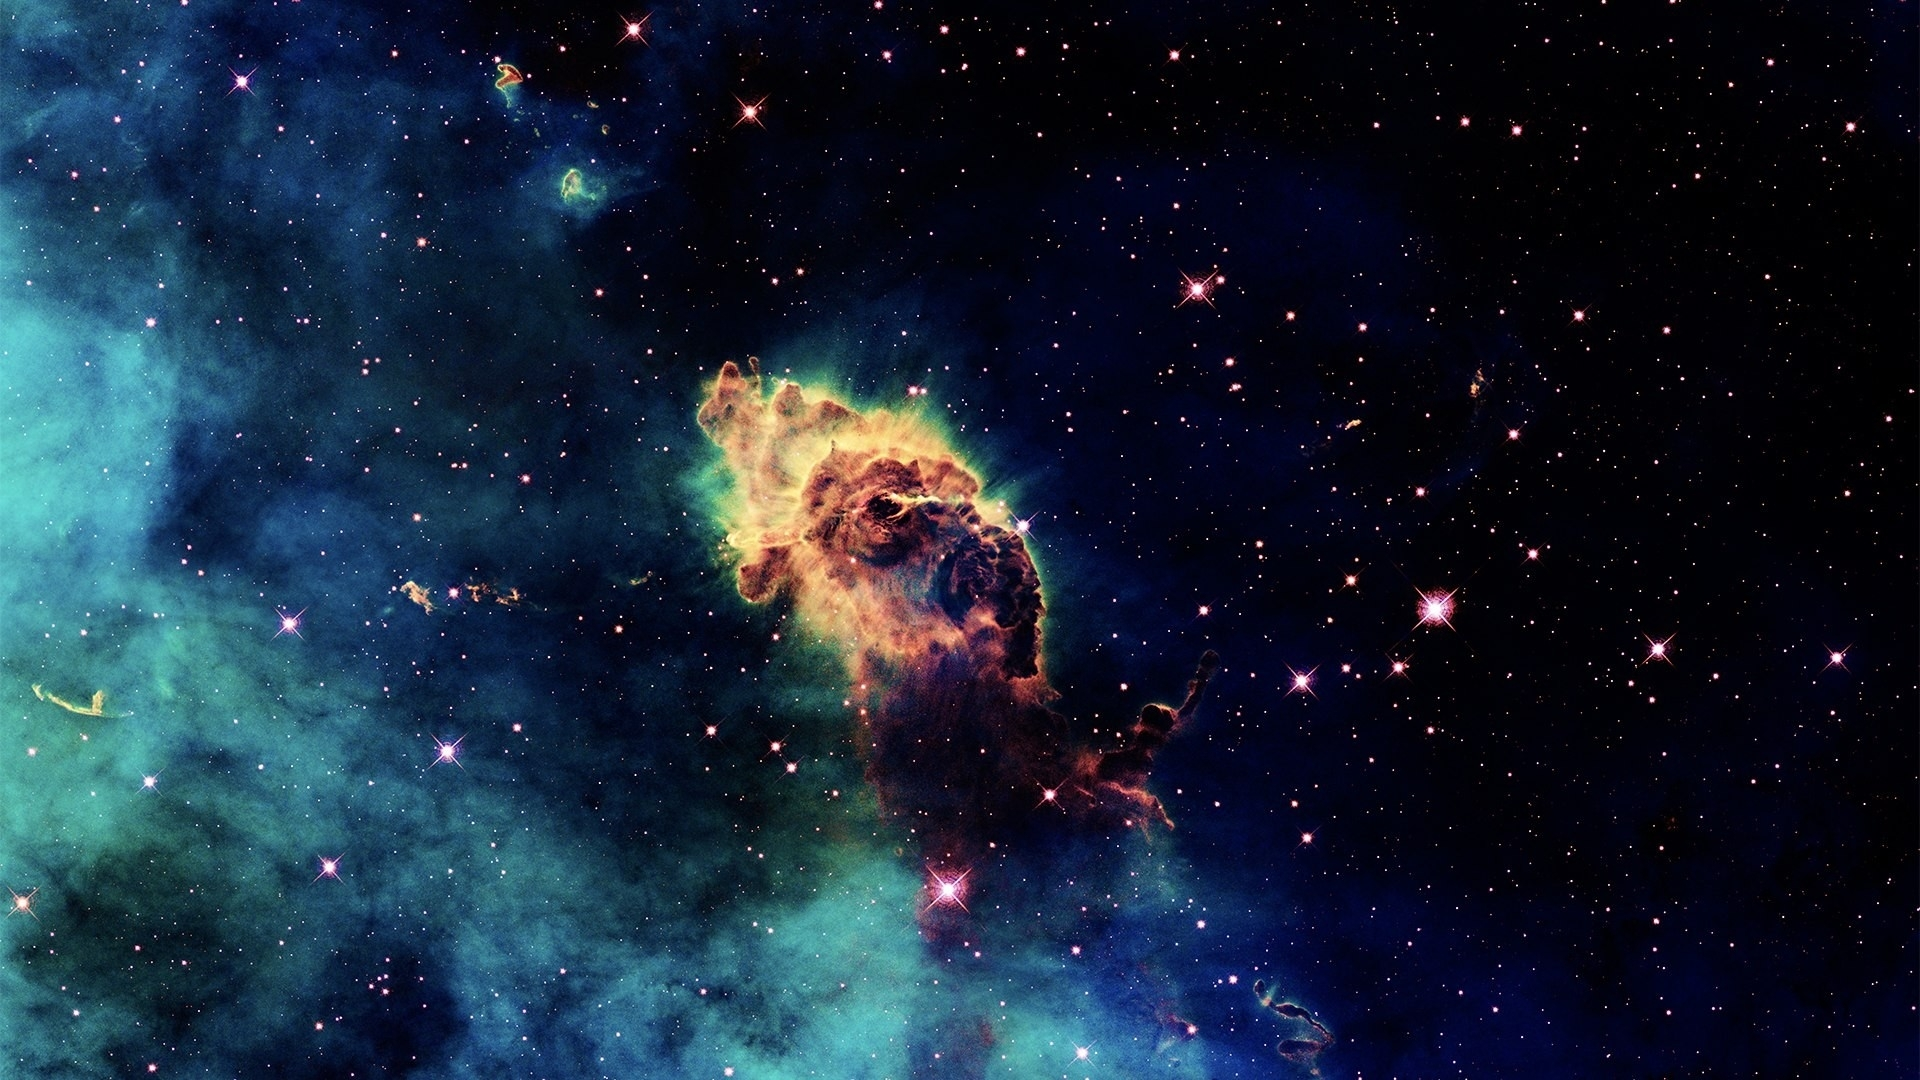 69+ real space wallpapers ·① download free stunning backgrounds for